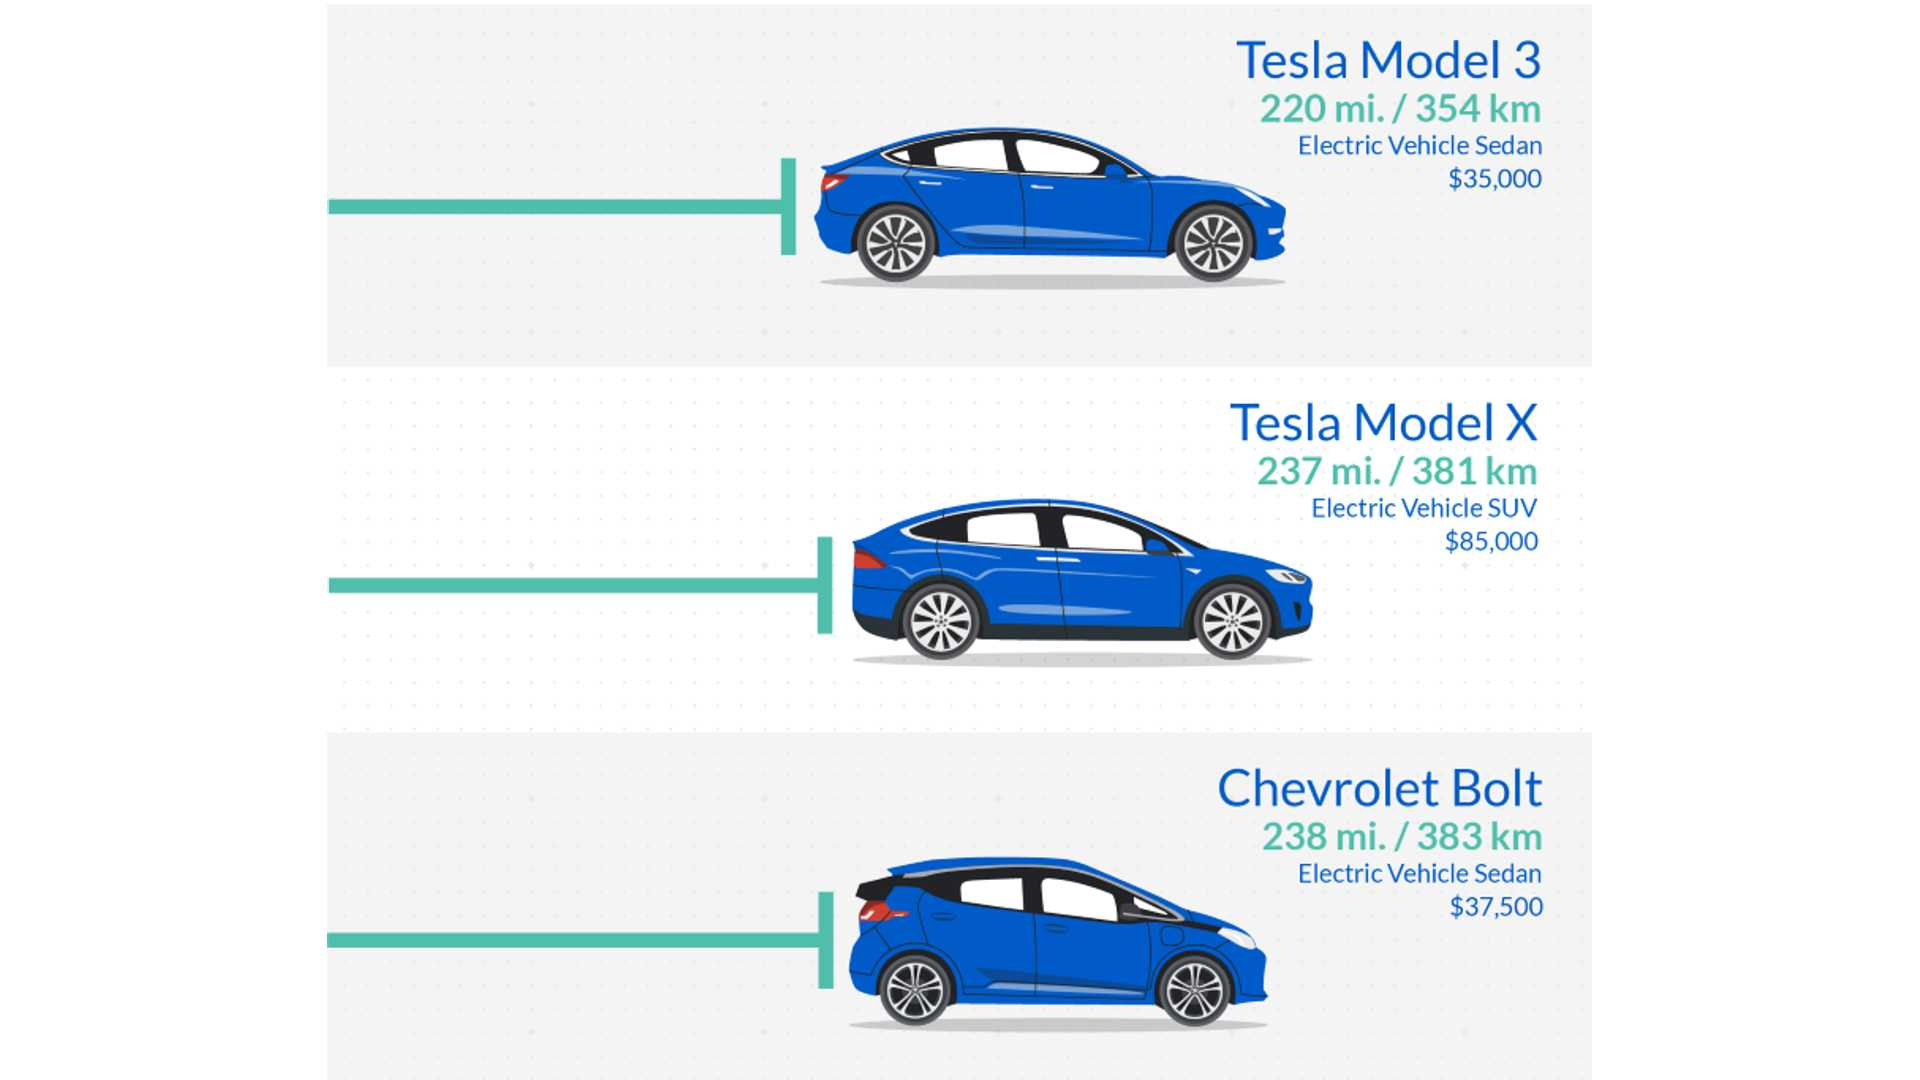 Electric Car Comparison >> 2018 U S Models Bev Range Comparison Infographic